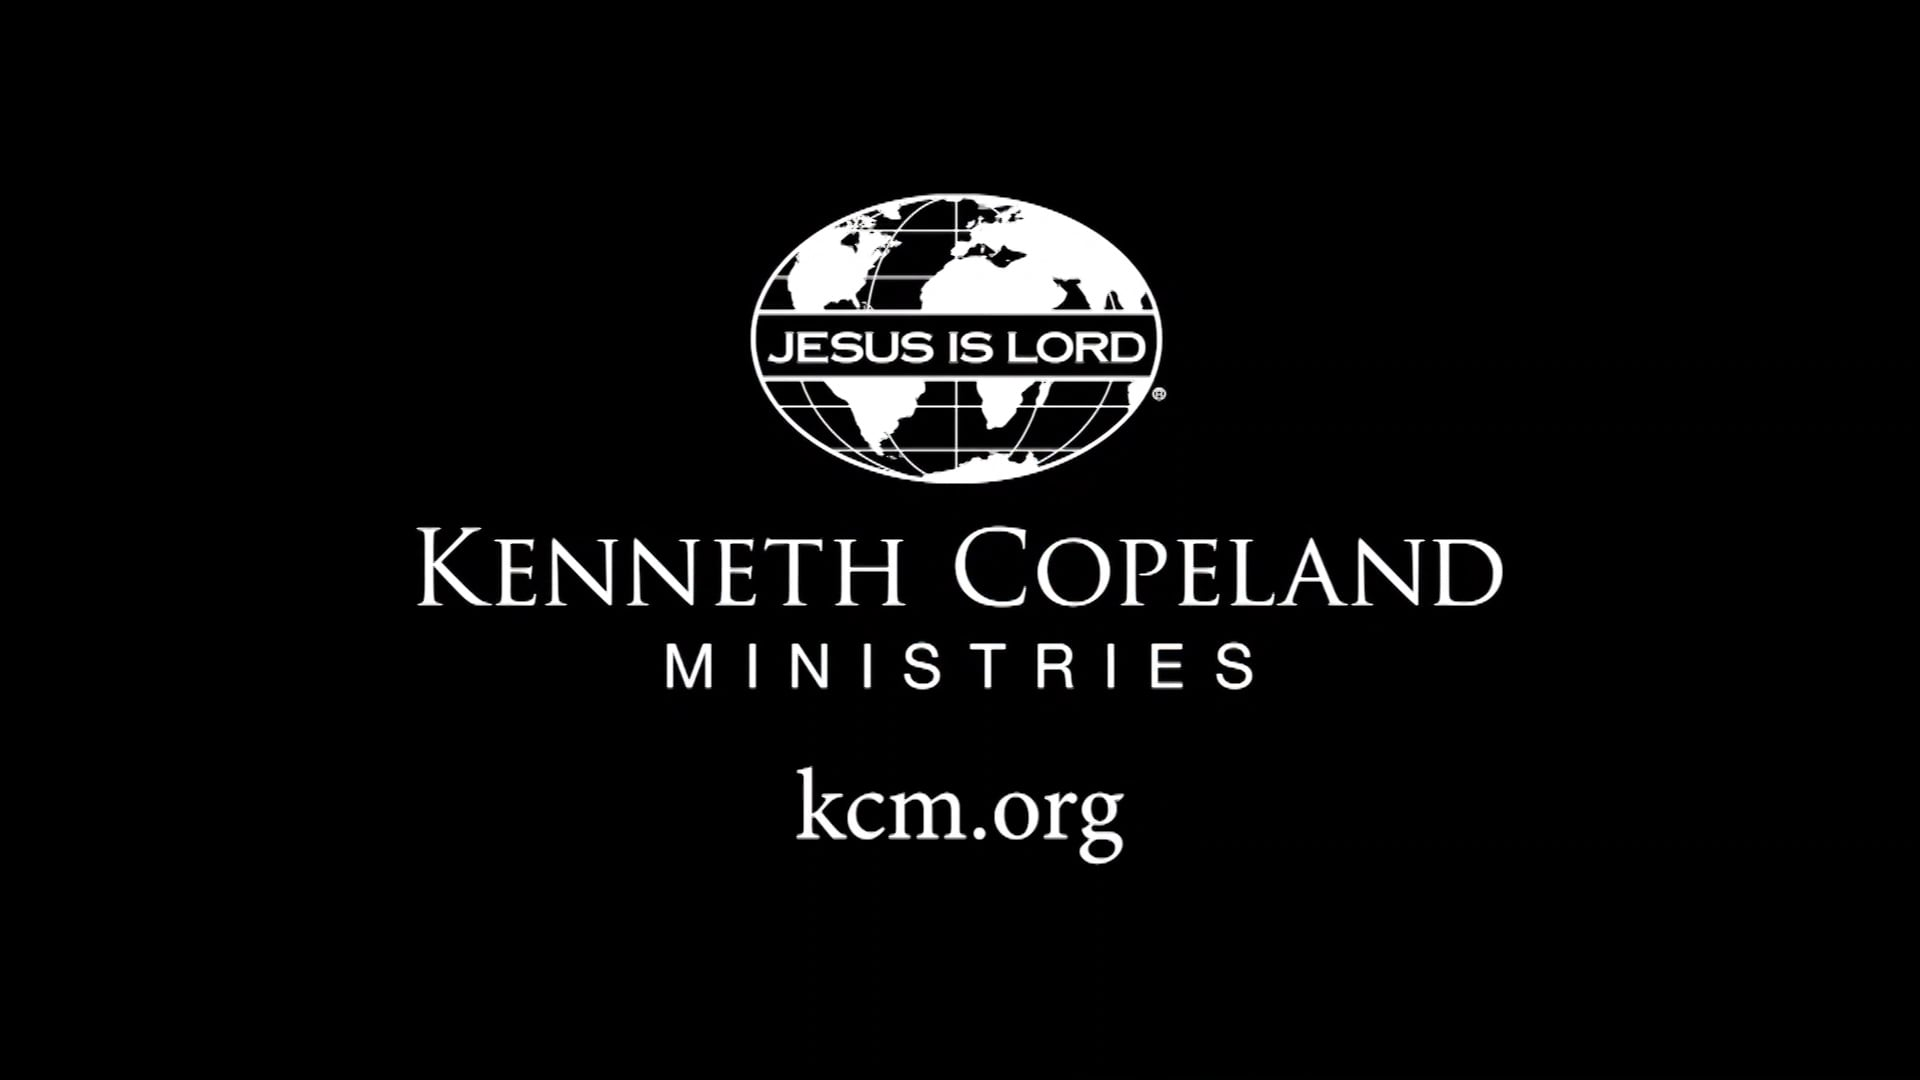 When we are in partnership with a ministry, we are partakers of their anointing. Join Kenneth Copeland at the 2021 Branson Virtual Victory Campaign as he explains how you can flow in the same anointing that flows in KCM. See testimonies of how seed is multiplied in the lives of others by partnership!